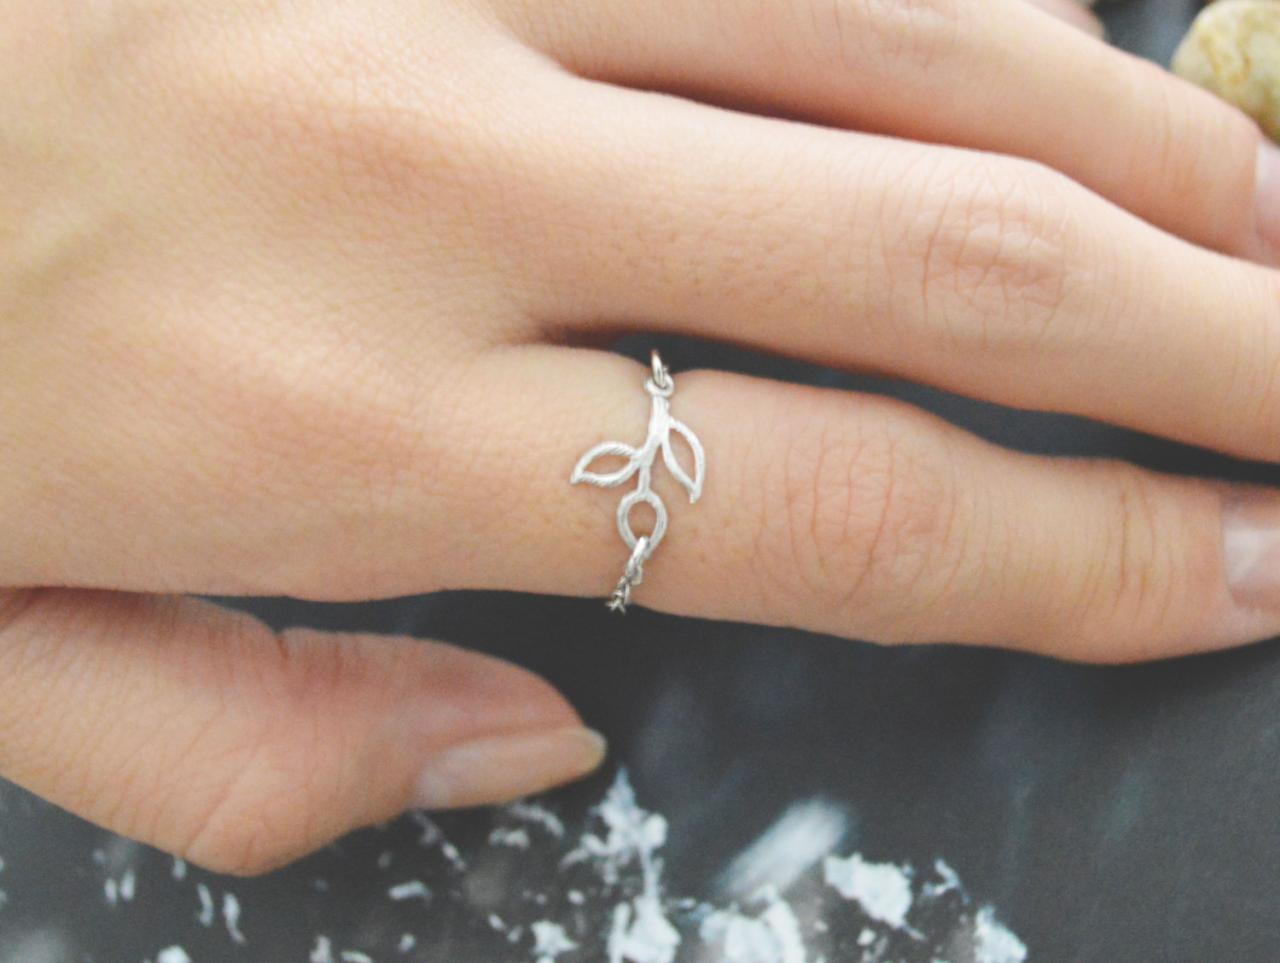 E-007 Small Leafs ring, Pendant ring, Chain ring, Simple ring, Modern ring, Silver plated ring/Everyday/Gift/